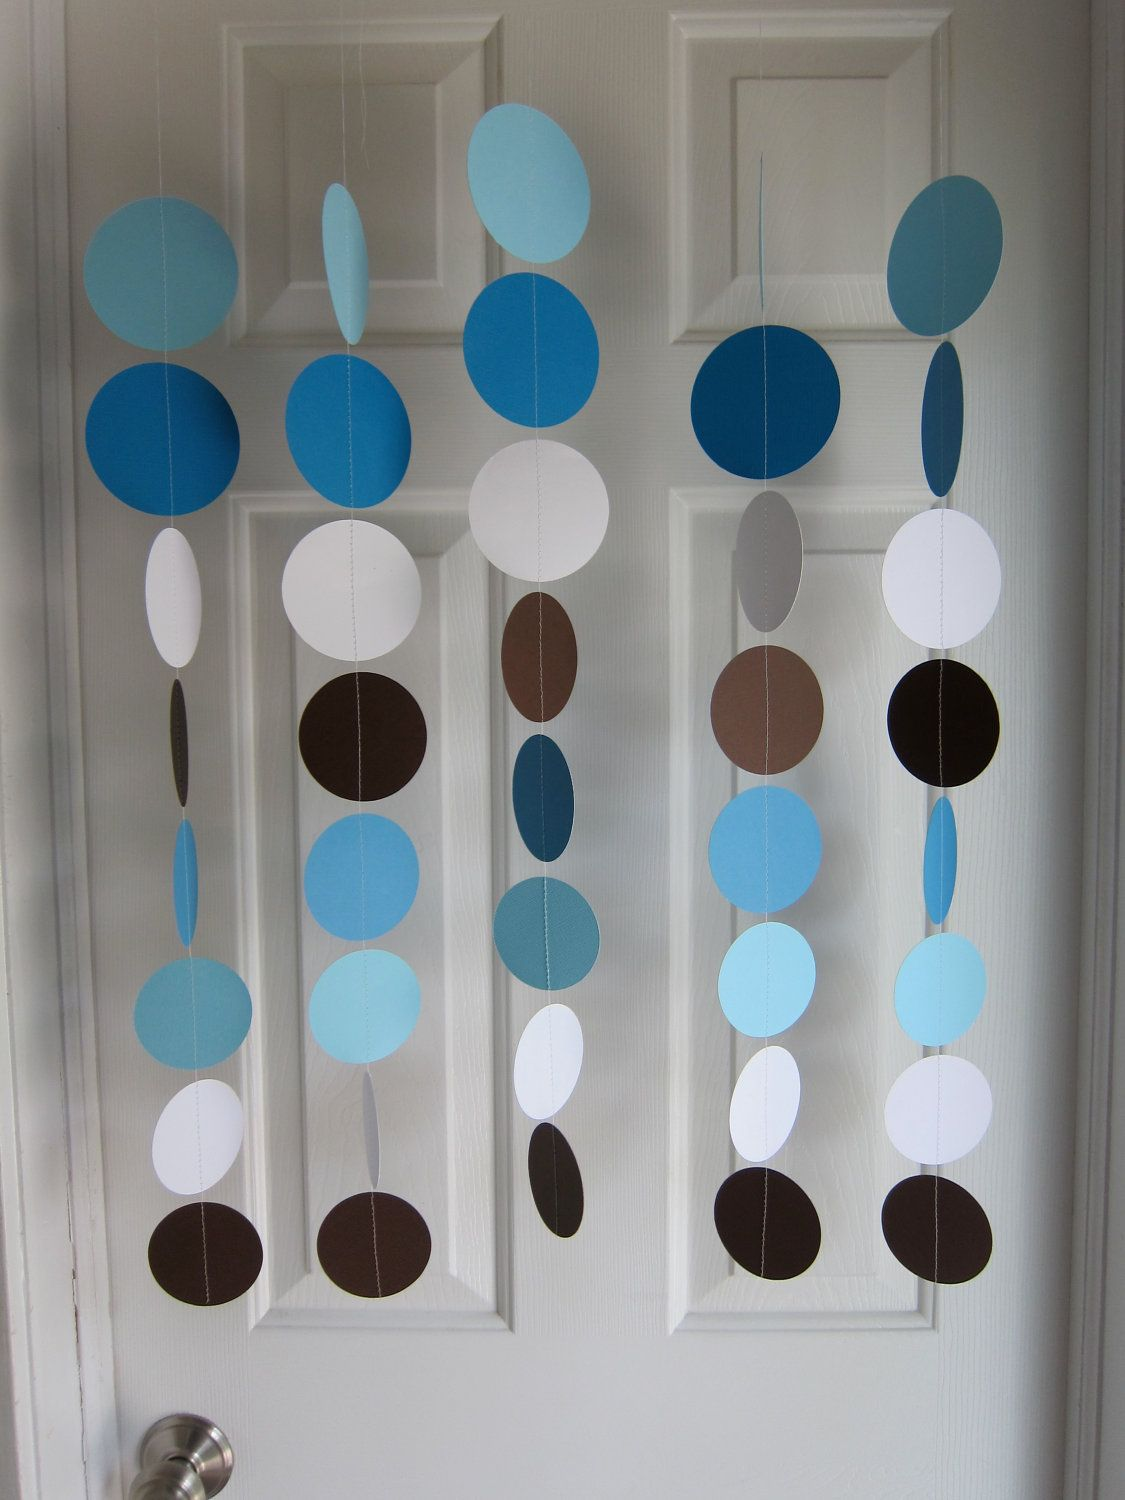 Birthday table decorations boy - Paper Garland Blue Brown And White Circles Dangling Decorations Blue Baby Shower Baby Boy Shower Decorationsbirthday